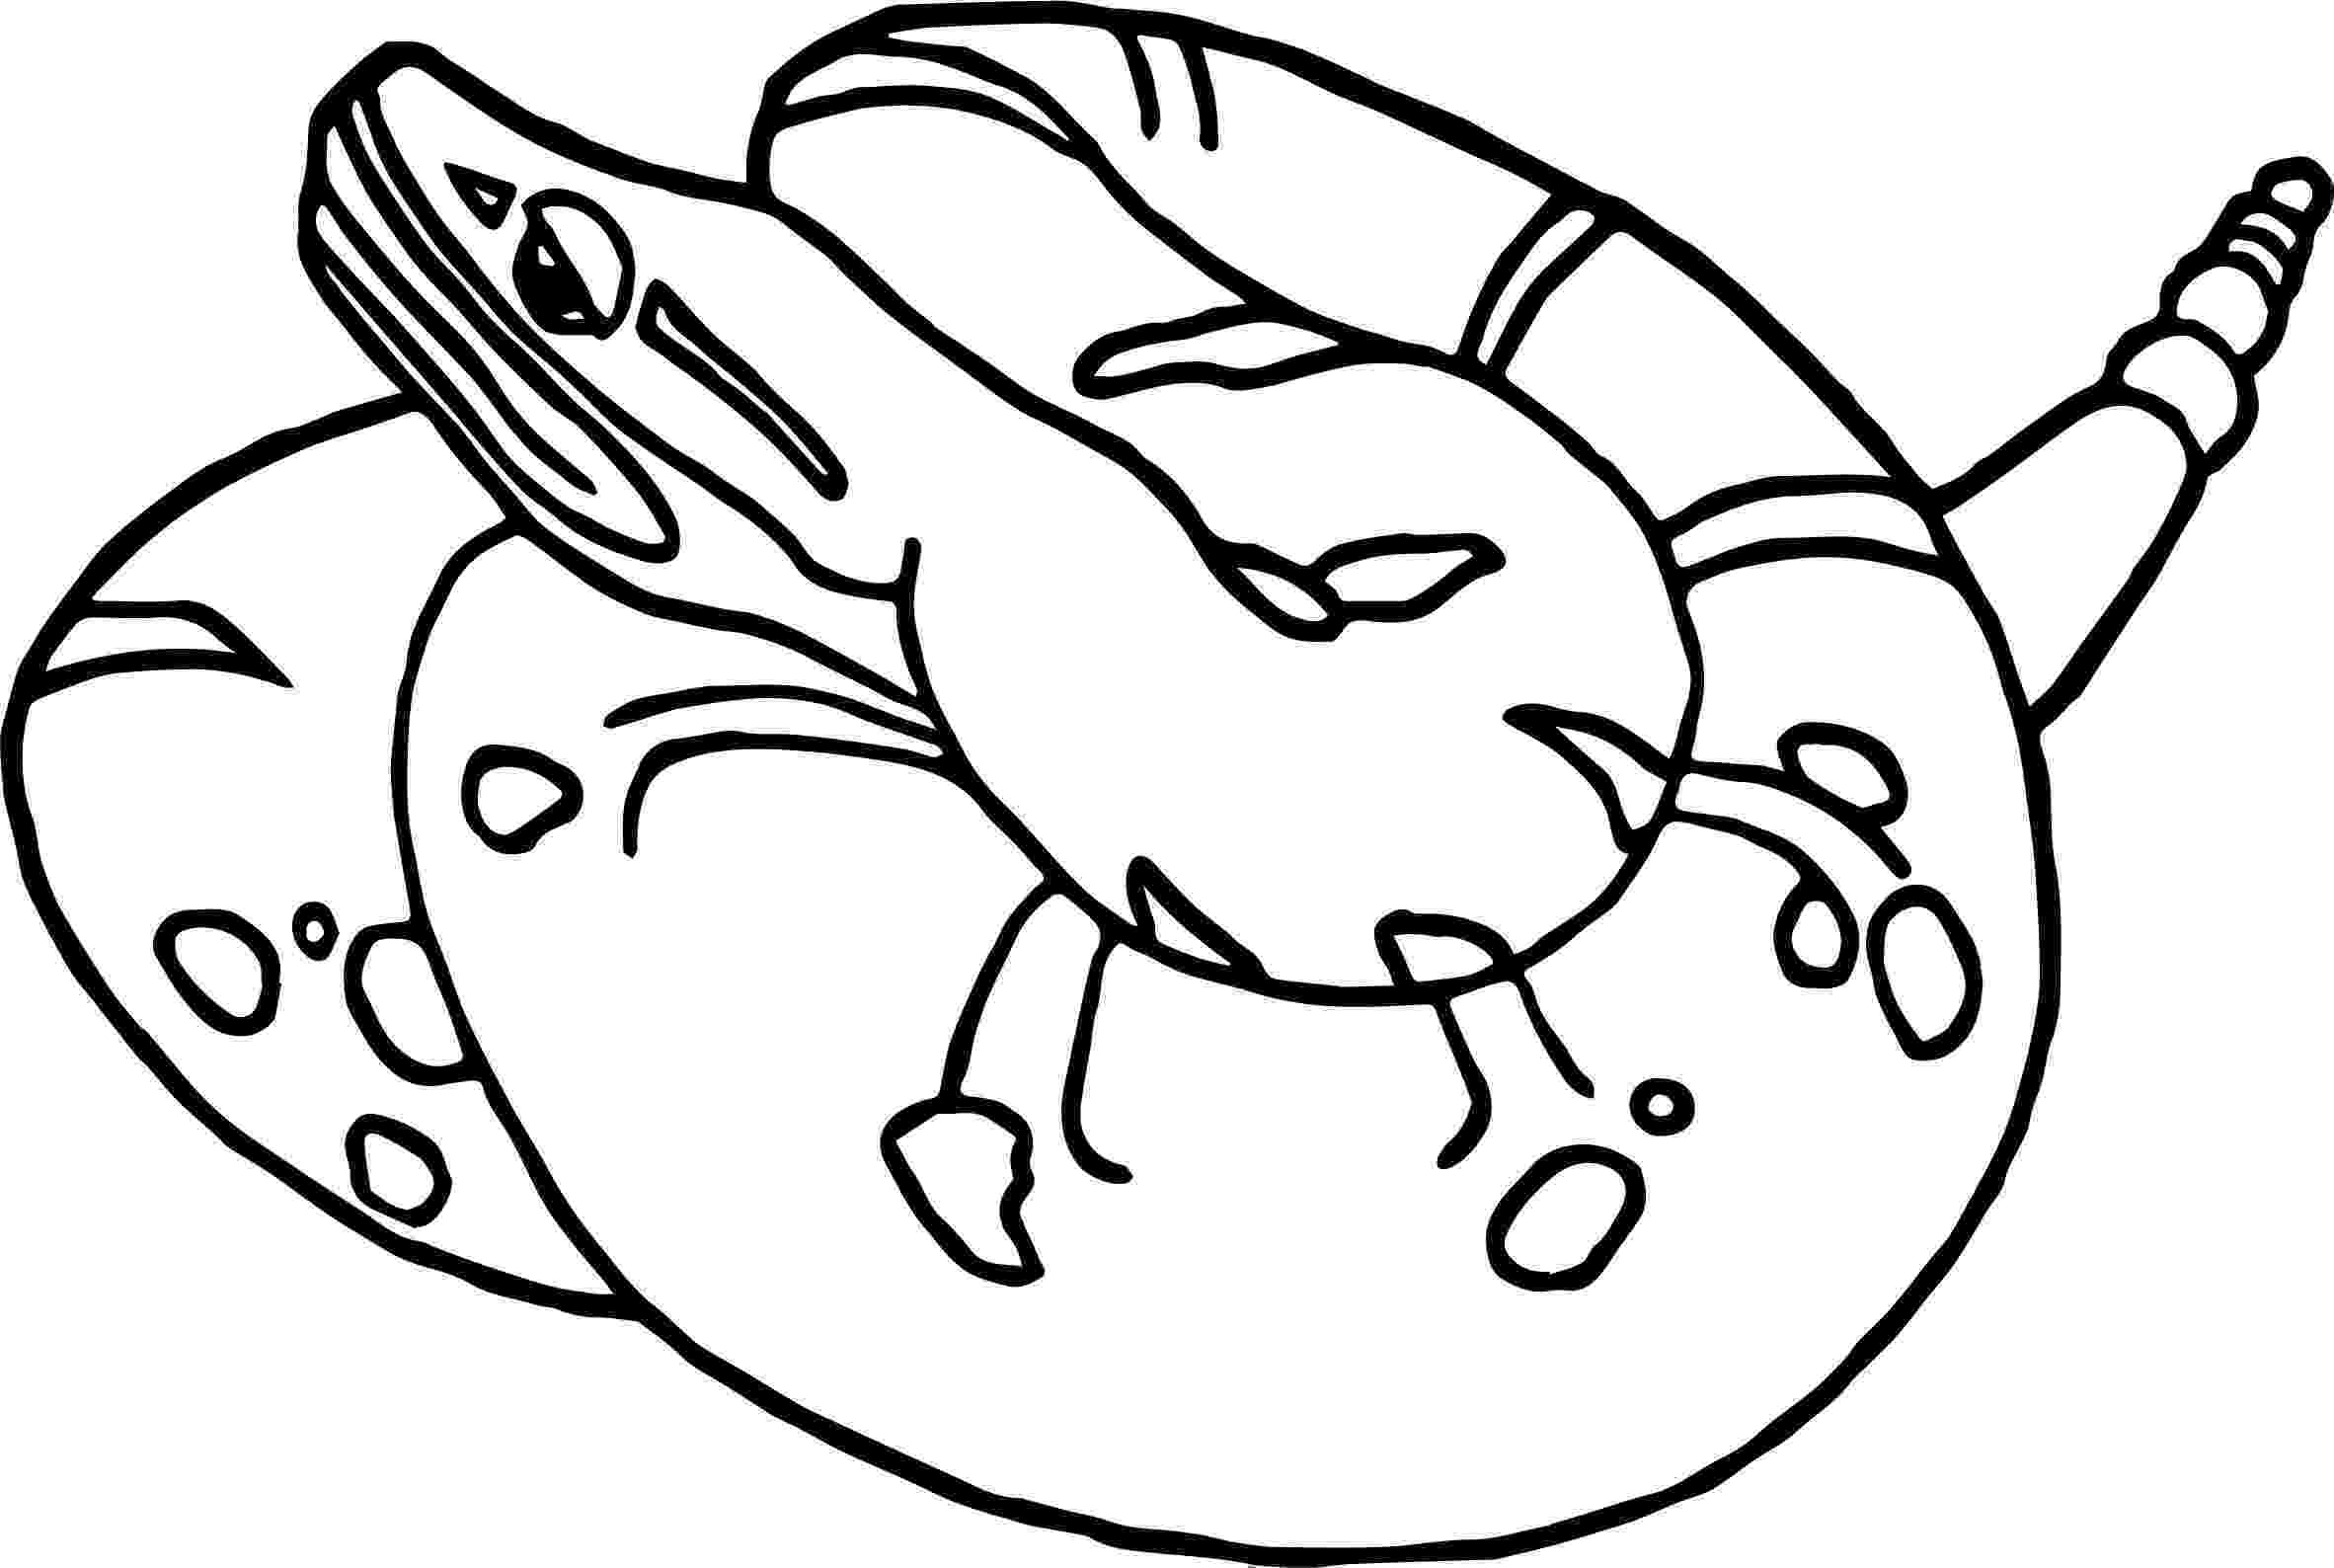 western diamondback rattlesnake coloring pages rattle snake drawing at getdrawingscom free for diamondback rattlesnake pages western coloring